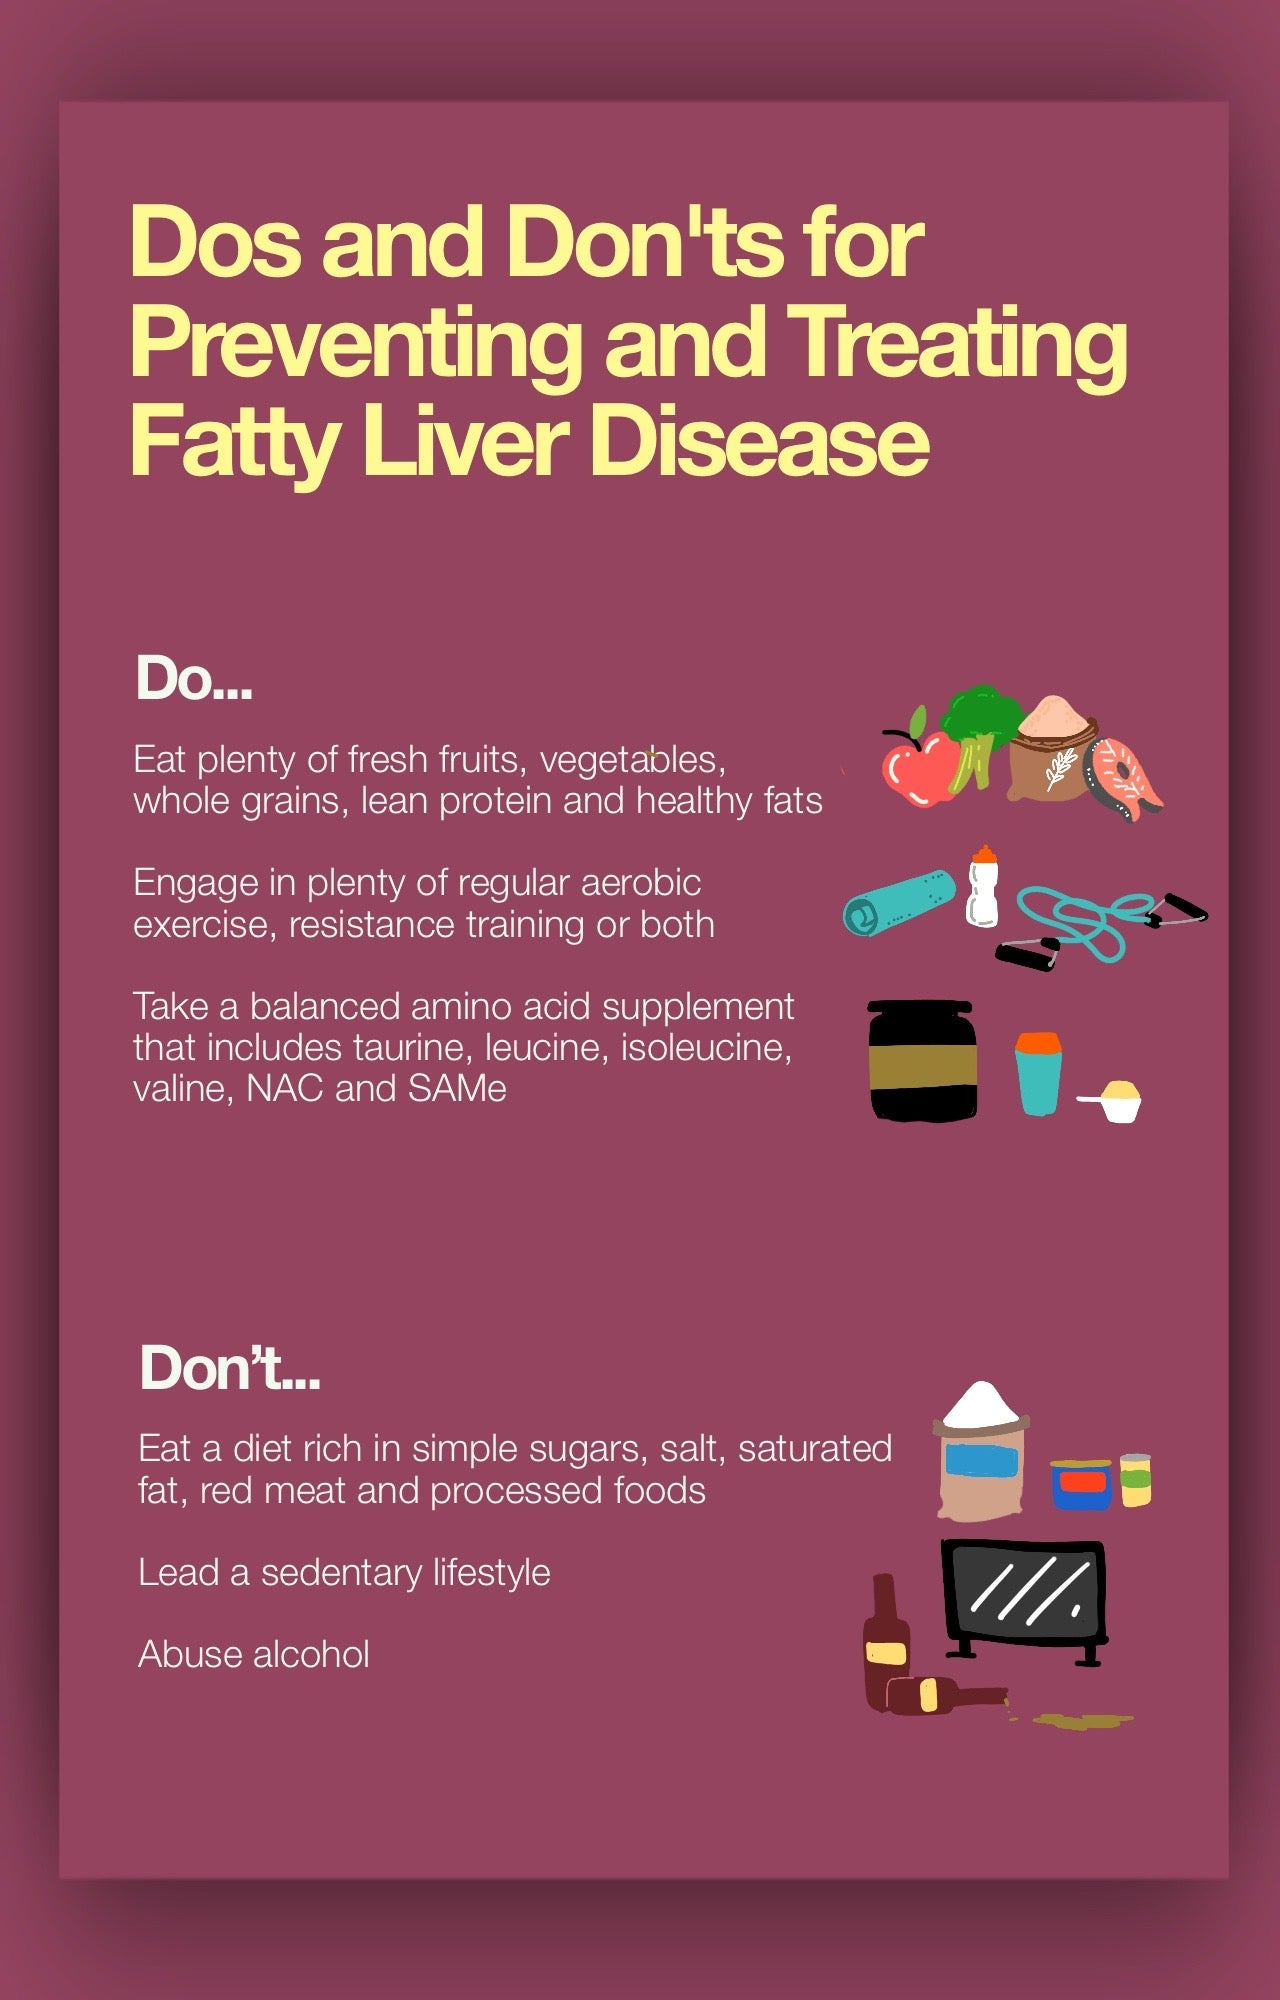 Dos and Don'ts for Preventing and Treating Fatty Liver Disease